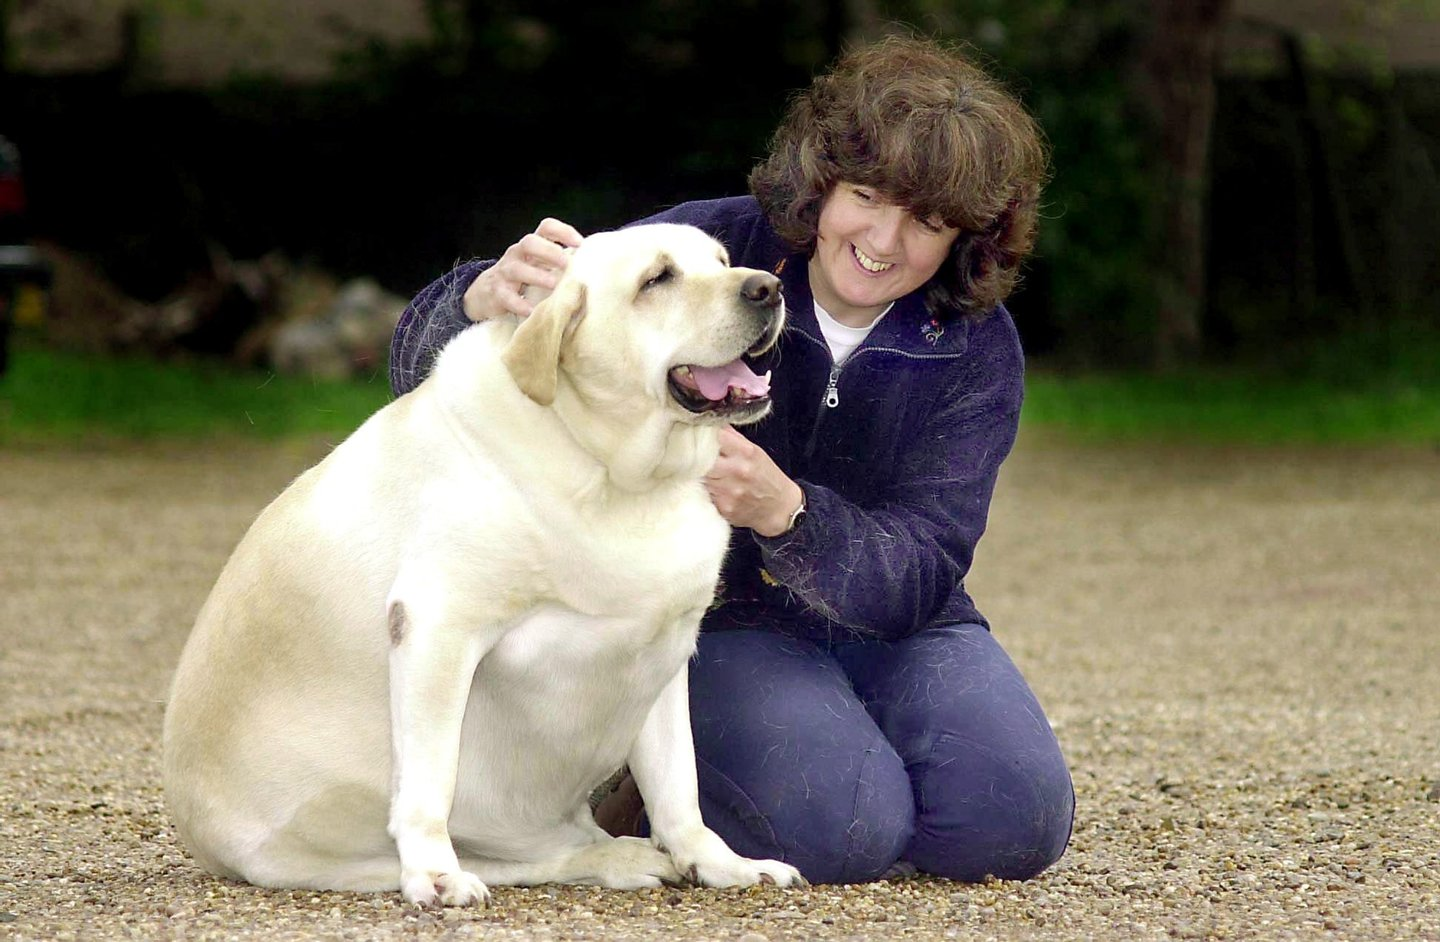 Dog owner Becky Jones pets four year-old labrador Chubby Charlie in Northfield Birmingham, United Kingdom, October 24, 2001. Chubby Charlie is forced to go on a crash diet after ballooning to an astonishing 168 pounds. (Photo by Mike Thomas/Express Newspapers/Getty Images)